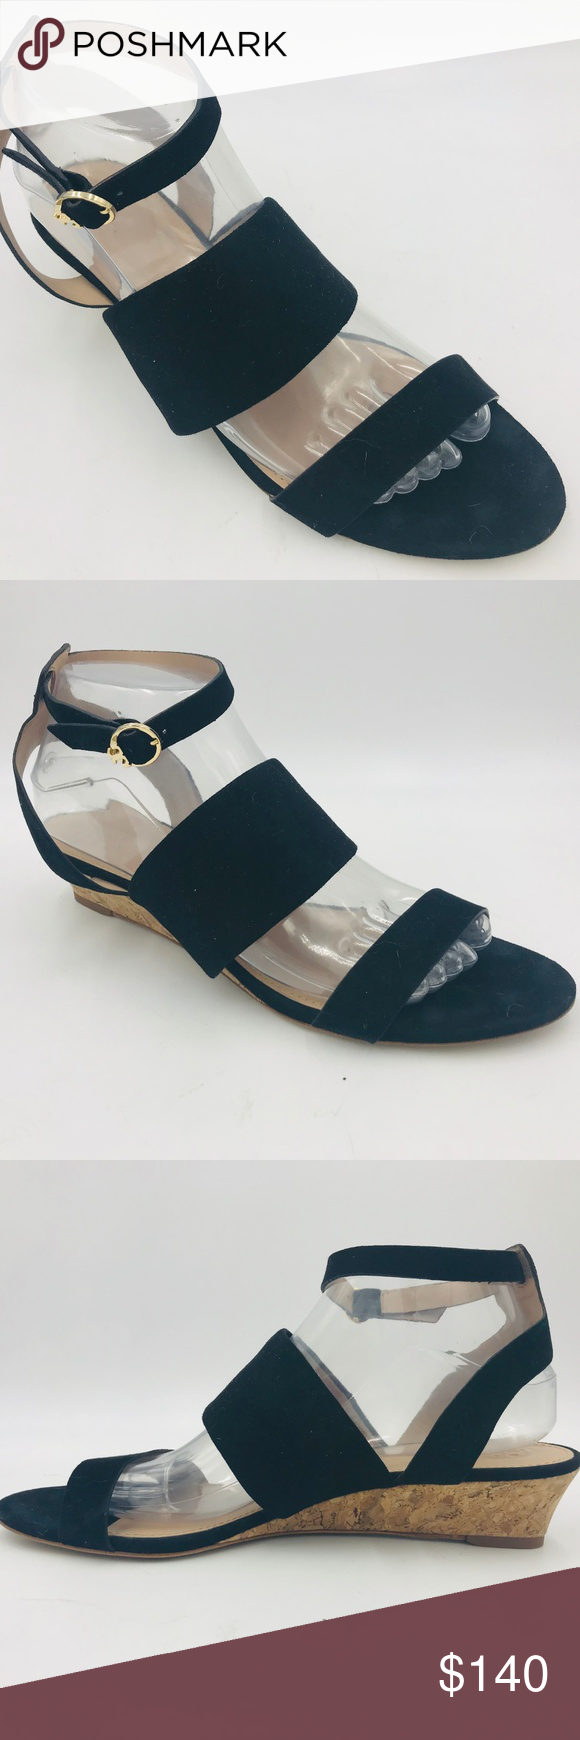 6fc17dbd5f5 TORY BURCH North Wedge Suede Leather Sandal EUC Excellent preowned  condition with no marks